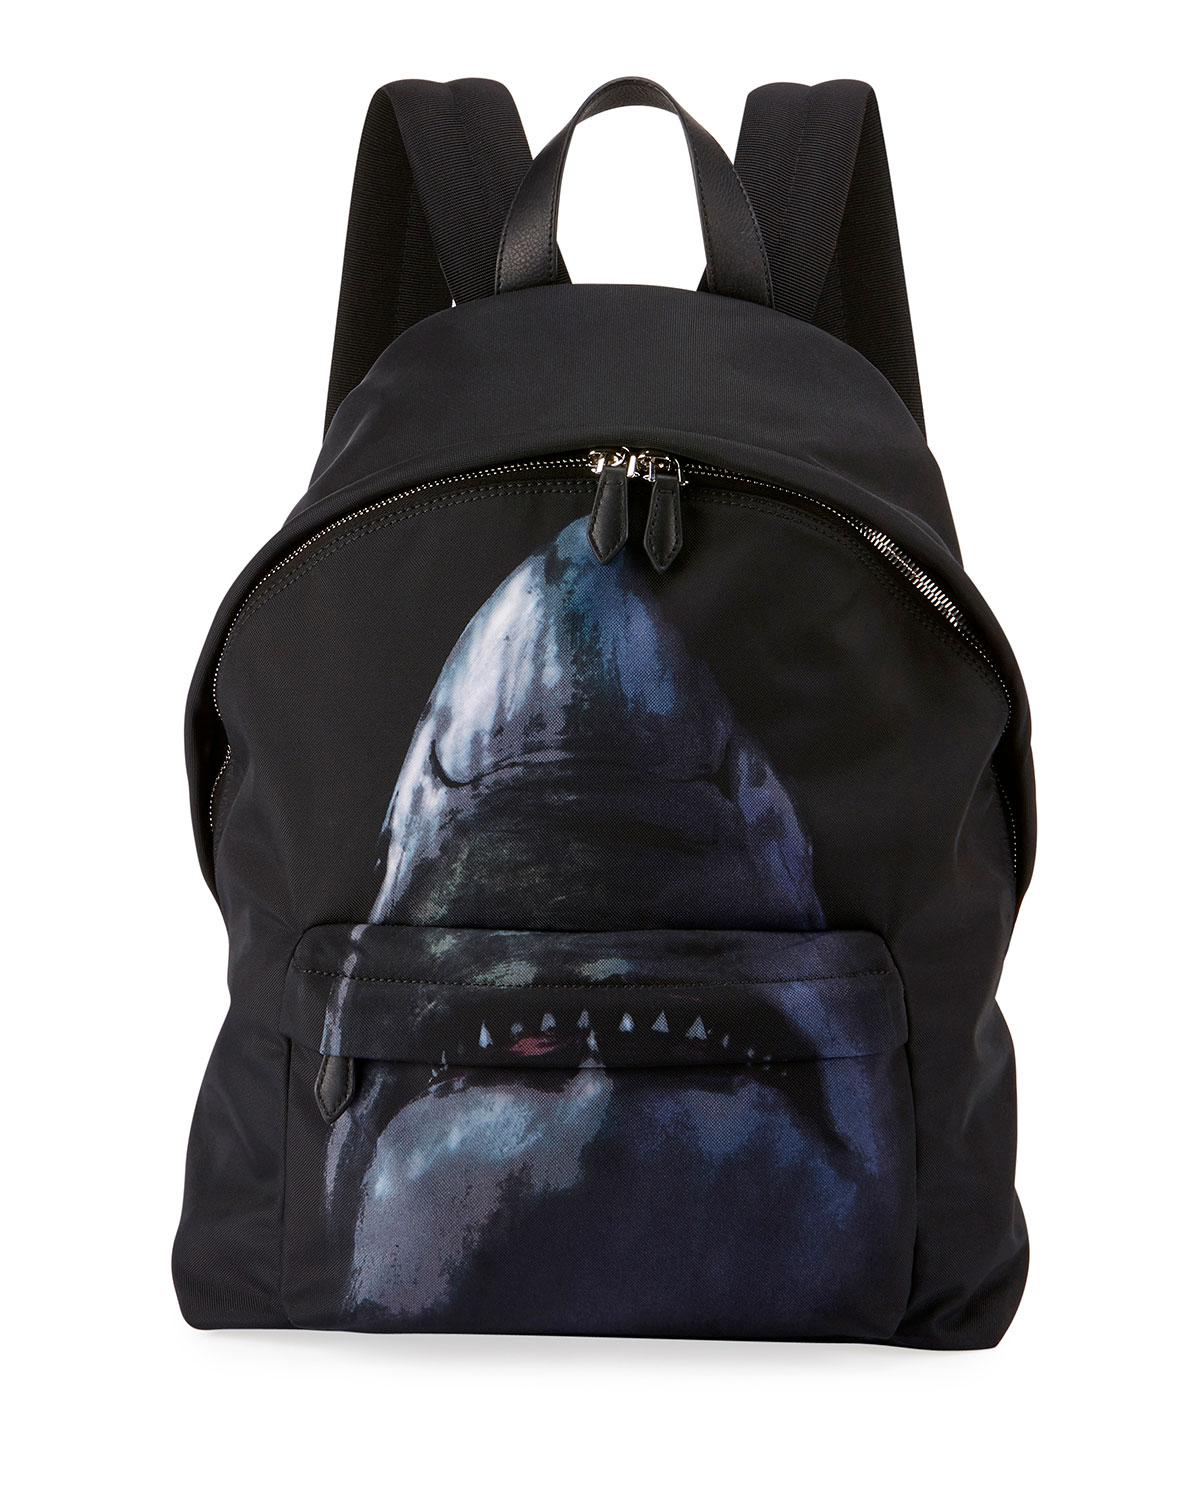 Lyst - Givenchy Shark-print Nylon Backpack in Black for Men 7bd21295d050a